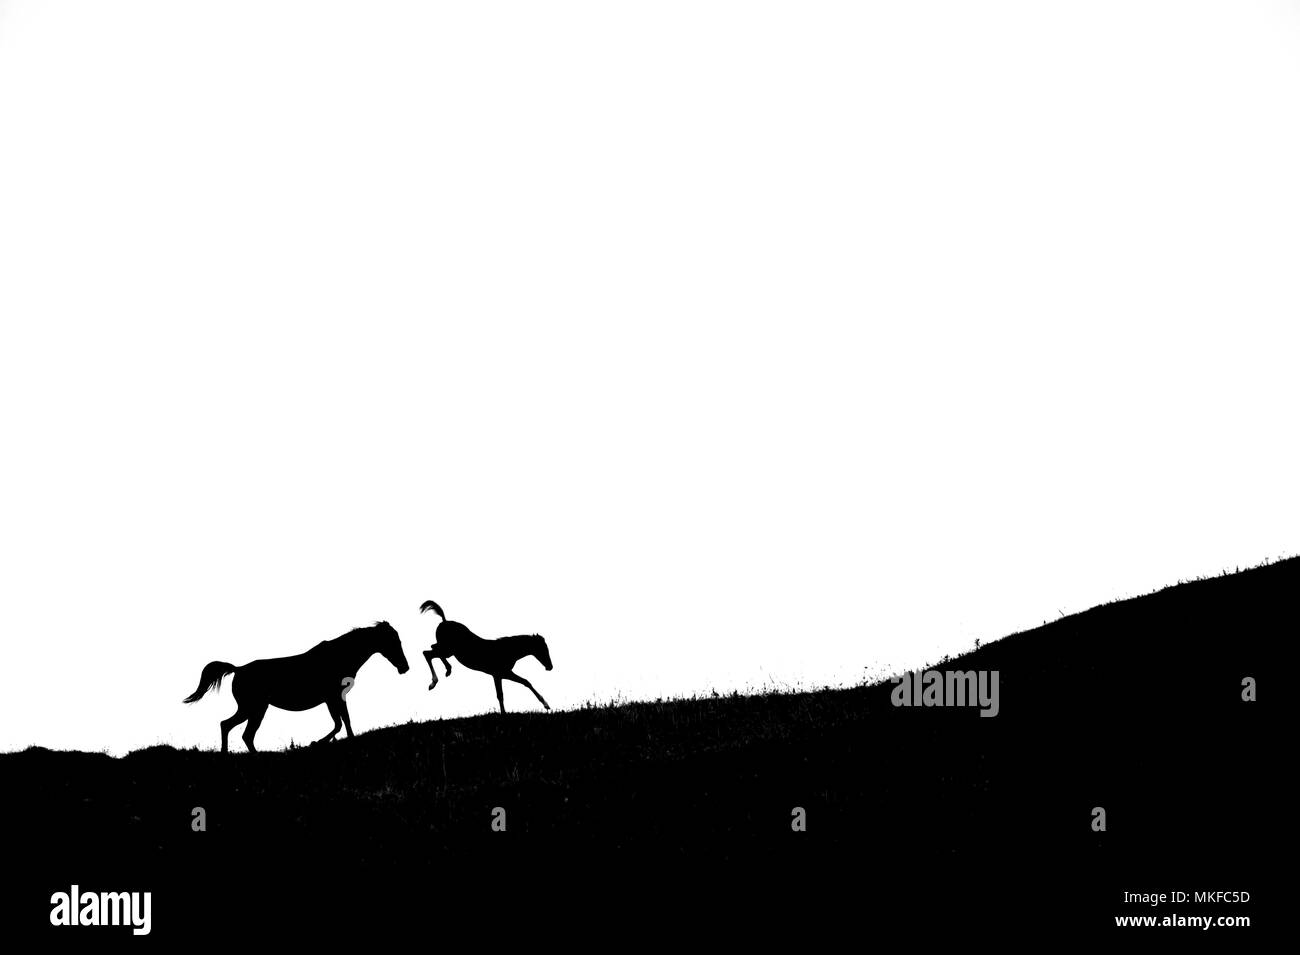 Silhouette of Mare and foal kicking on white background - Stock Image